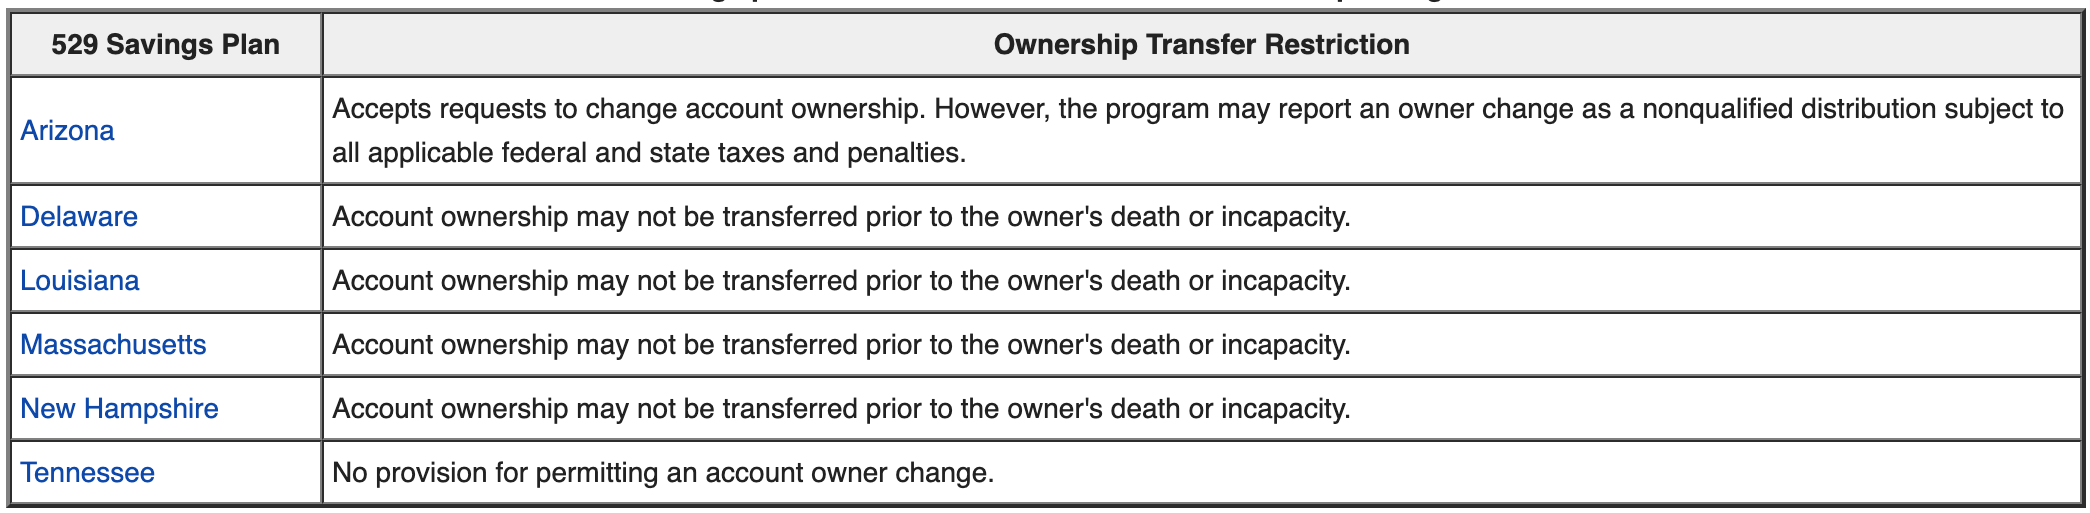 529 Savings plan ownership transfer restrictions by state - Roth IRA or a 529 pla